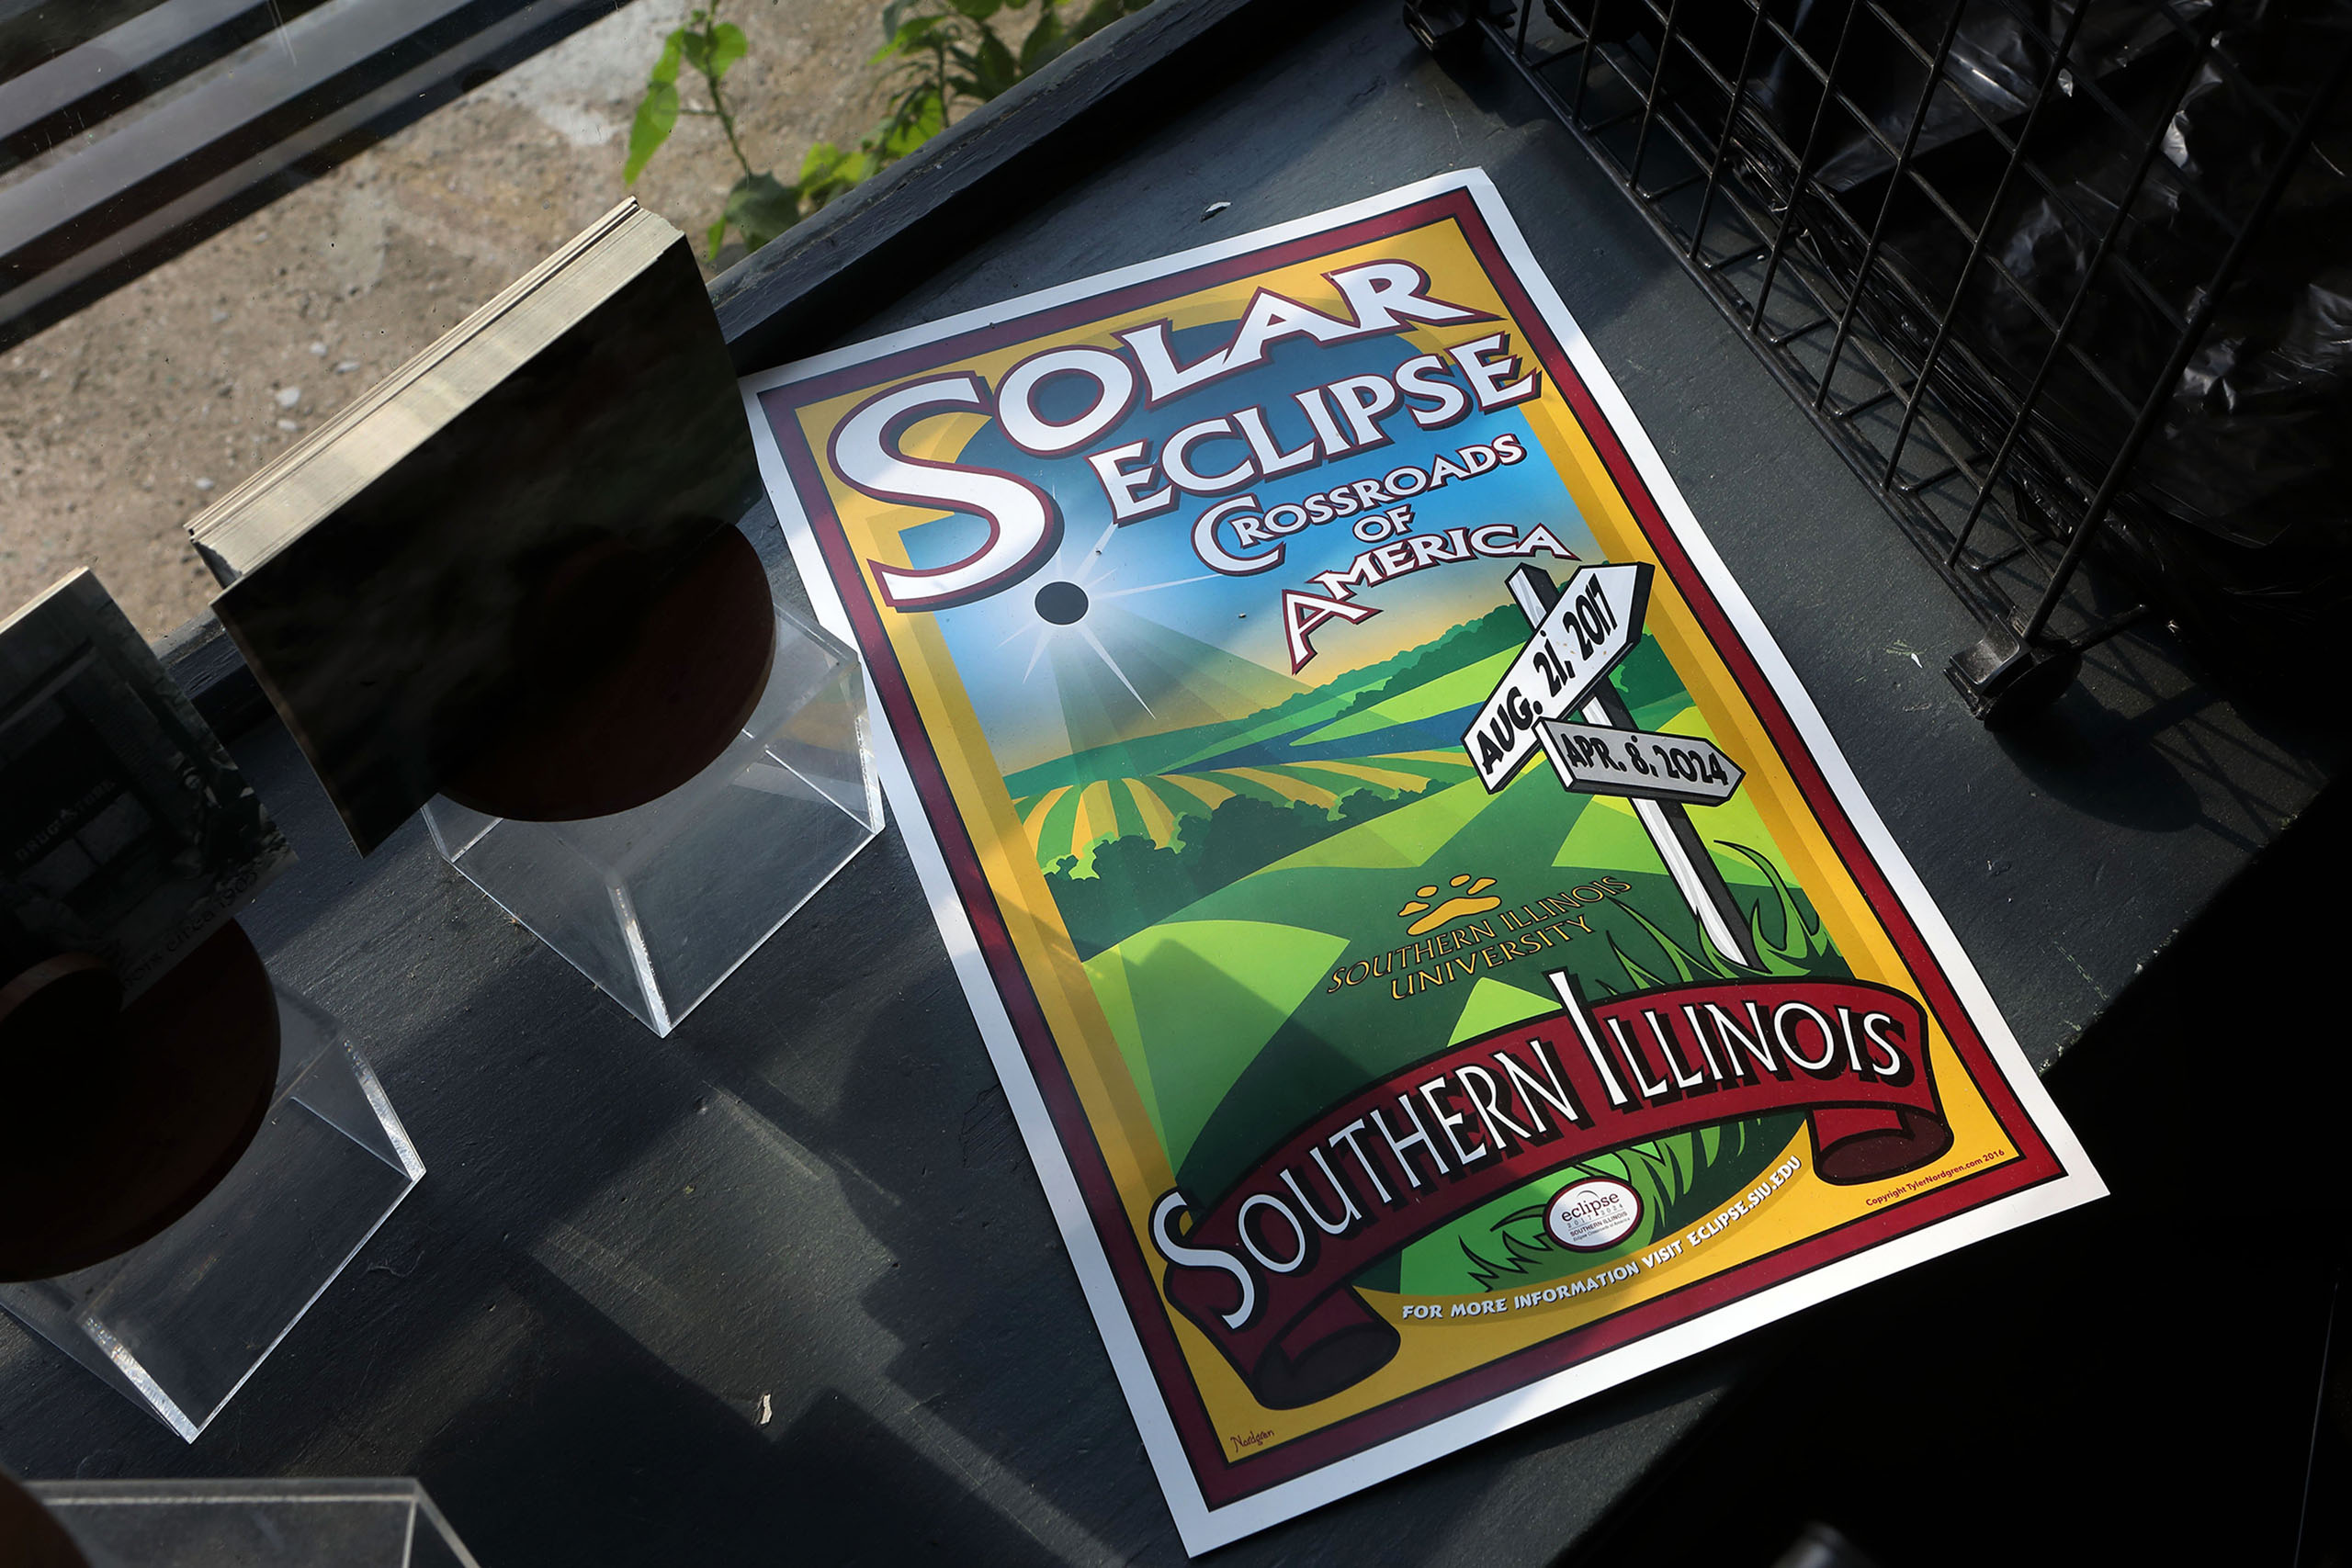 A sign promoting Makanda, Illinois as the  Solar Eclipse Crossroads of America  sits on the window ledge at the Eclipse Kitchen in Makanda on July 19, 2017.